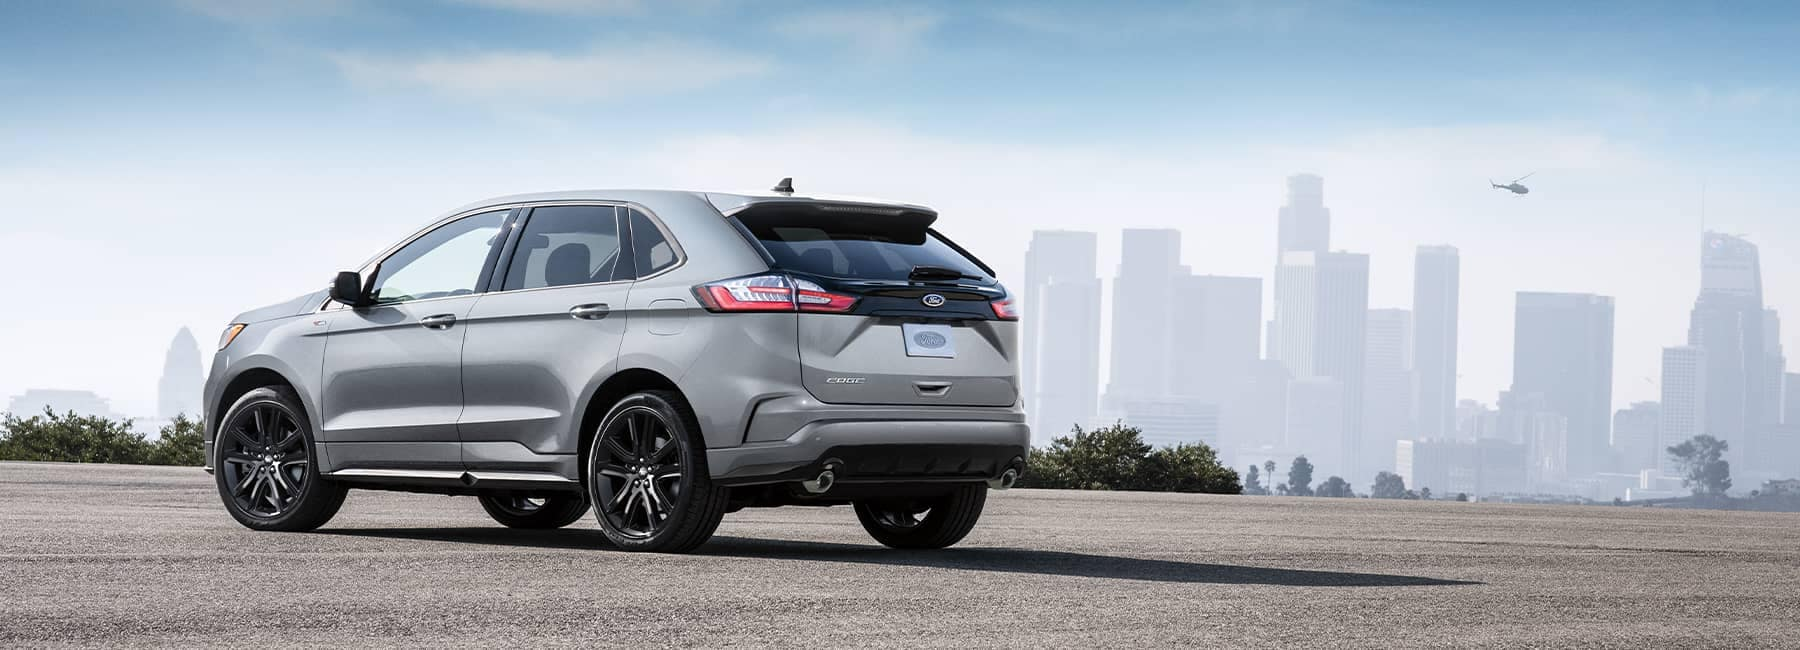 A silver 2021 Ford Edge parked with a cityscape in the background